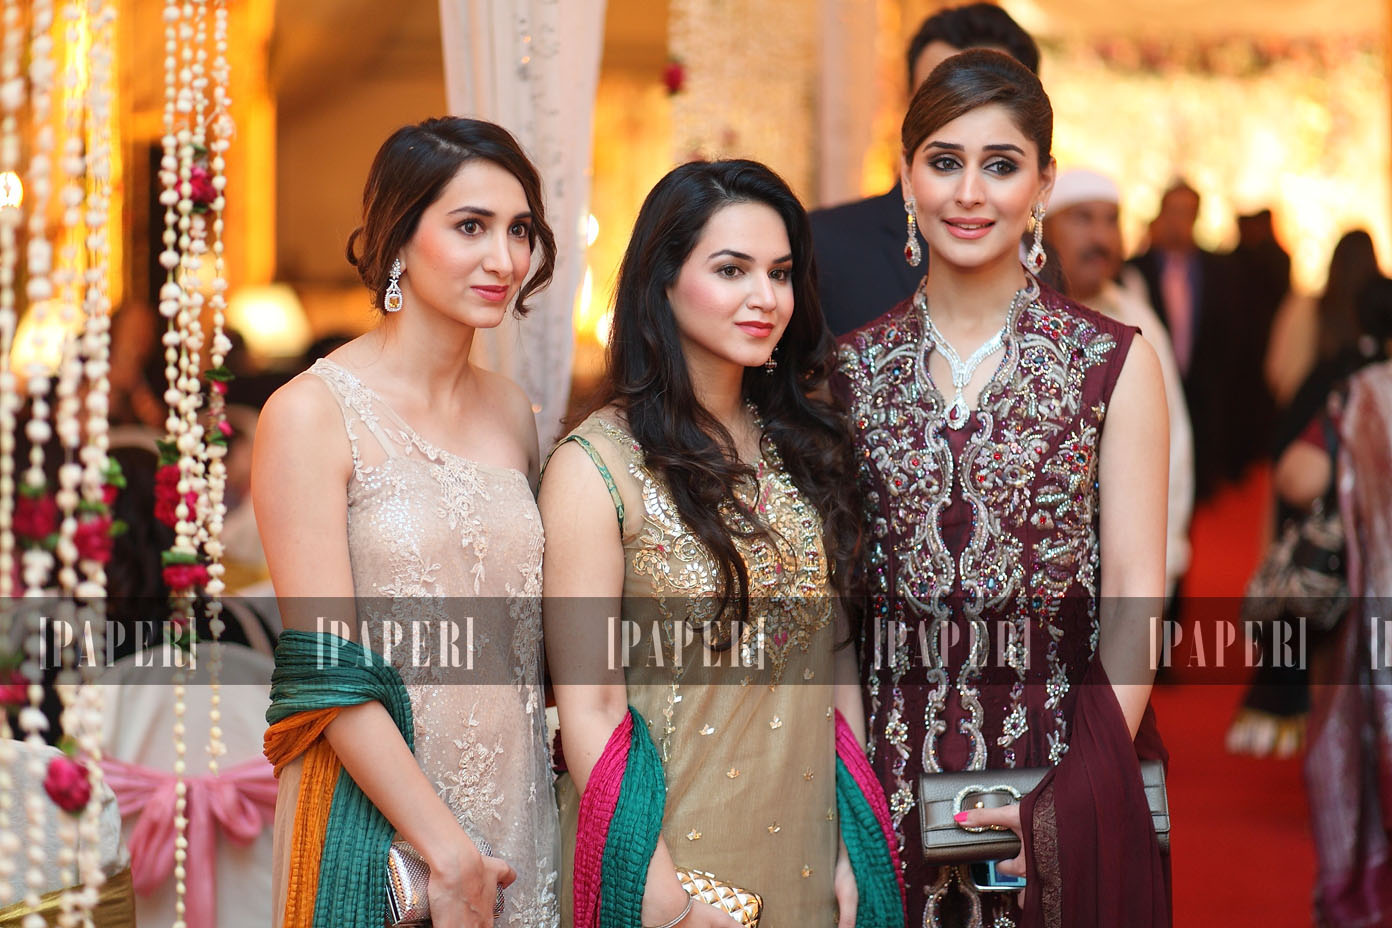 Ayesha and Anum Yousaf with Sara Walid Mushtaq